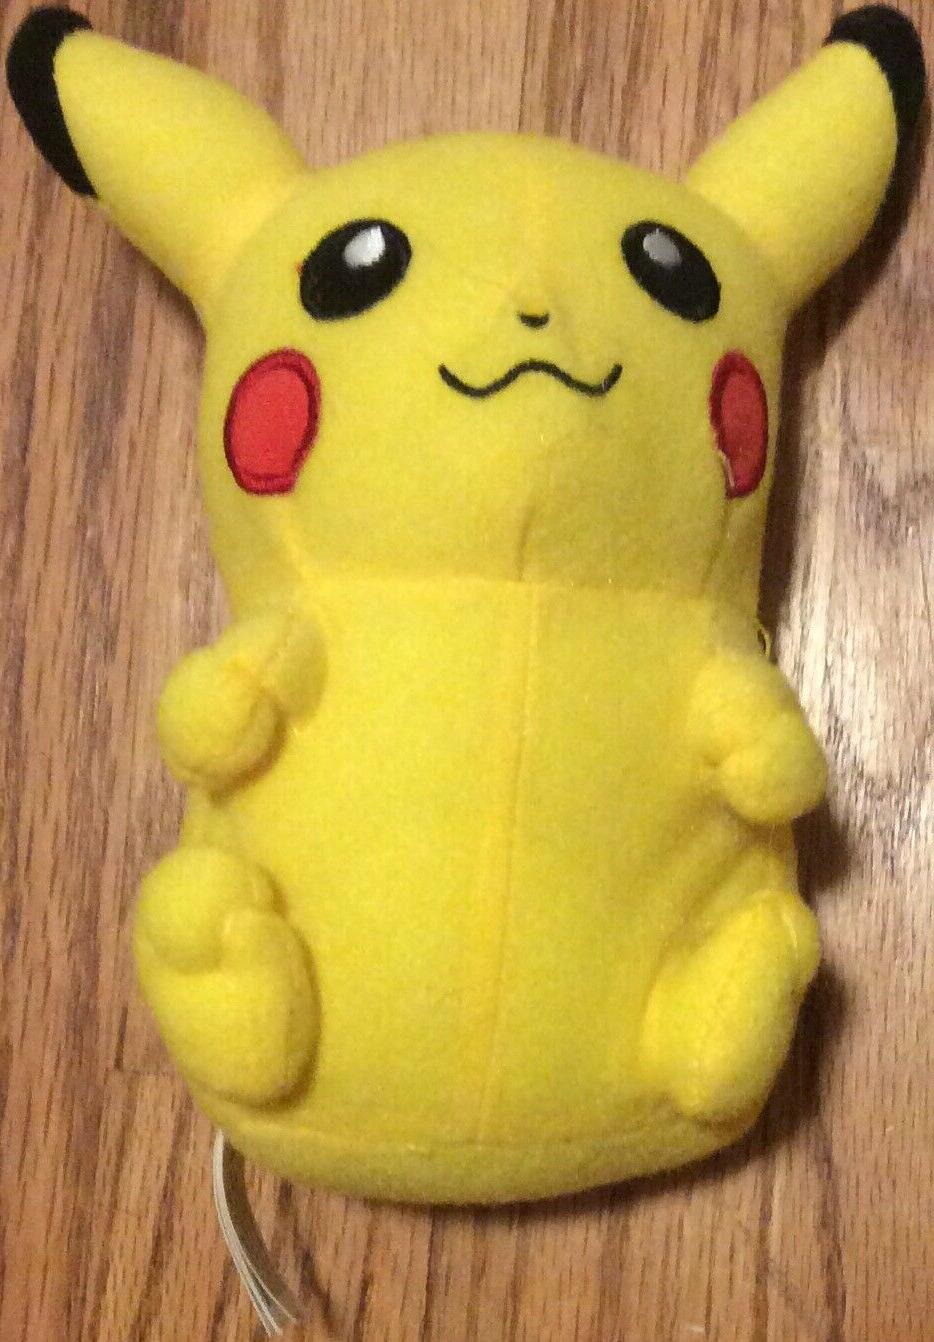 pokemon pikachu 7 plush toy toy factory